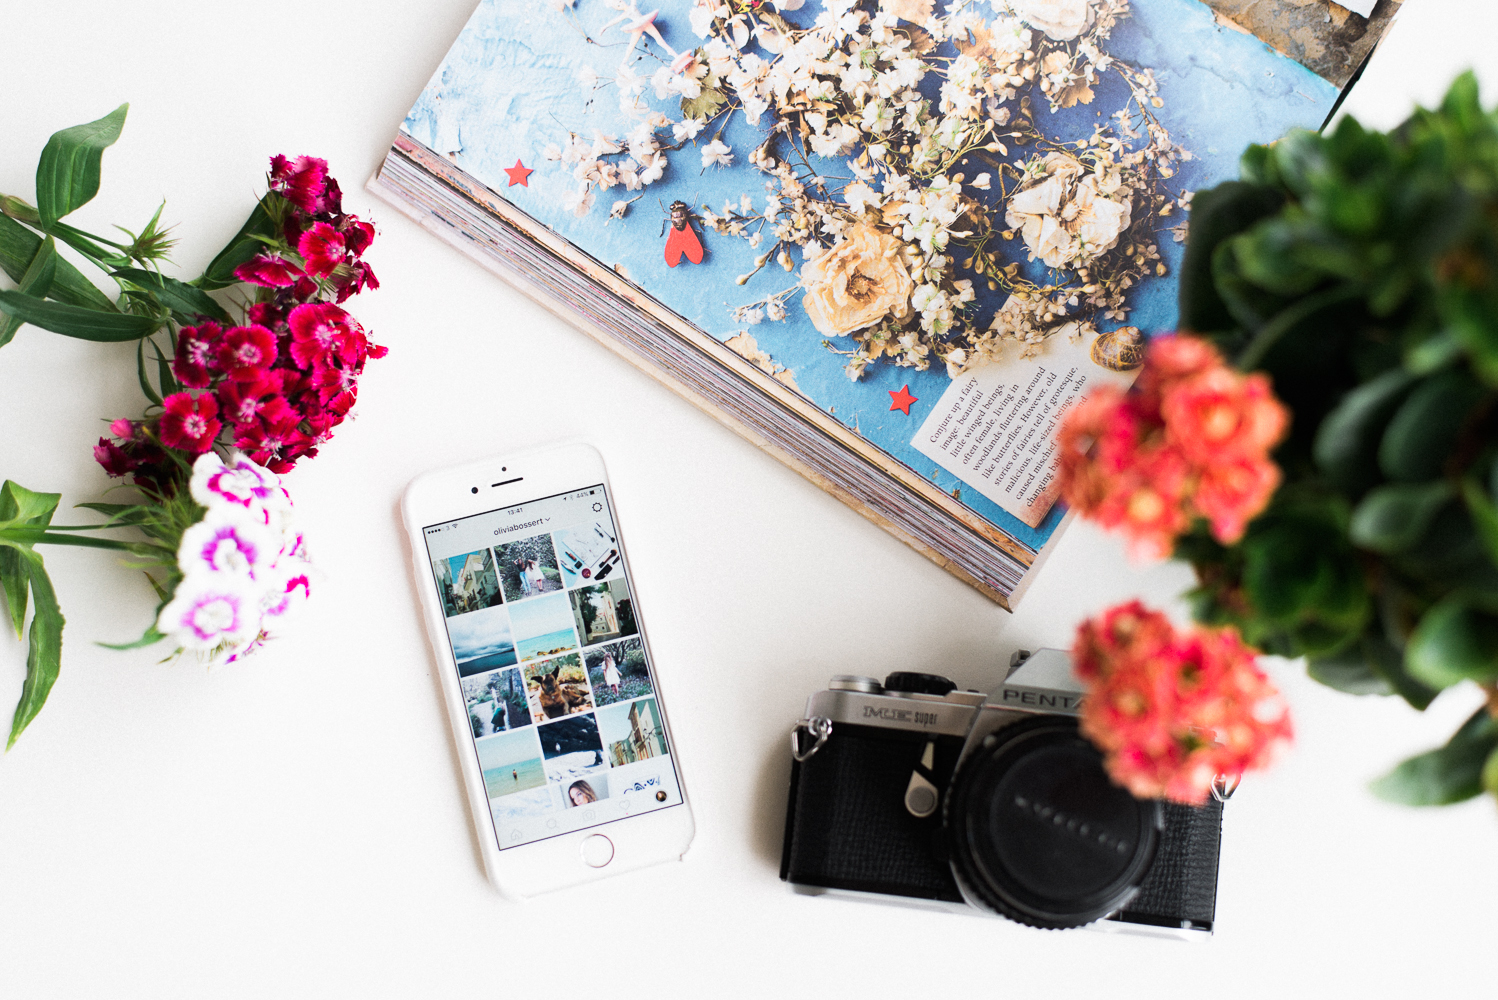 10 Instagram Accounts To Get You Inspired - oliviablogs.com